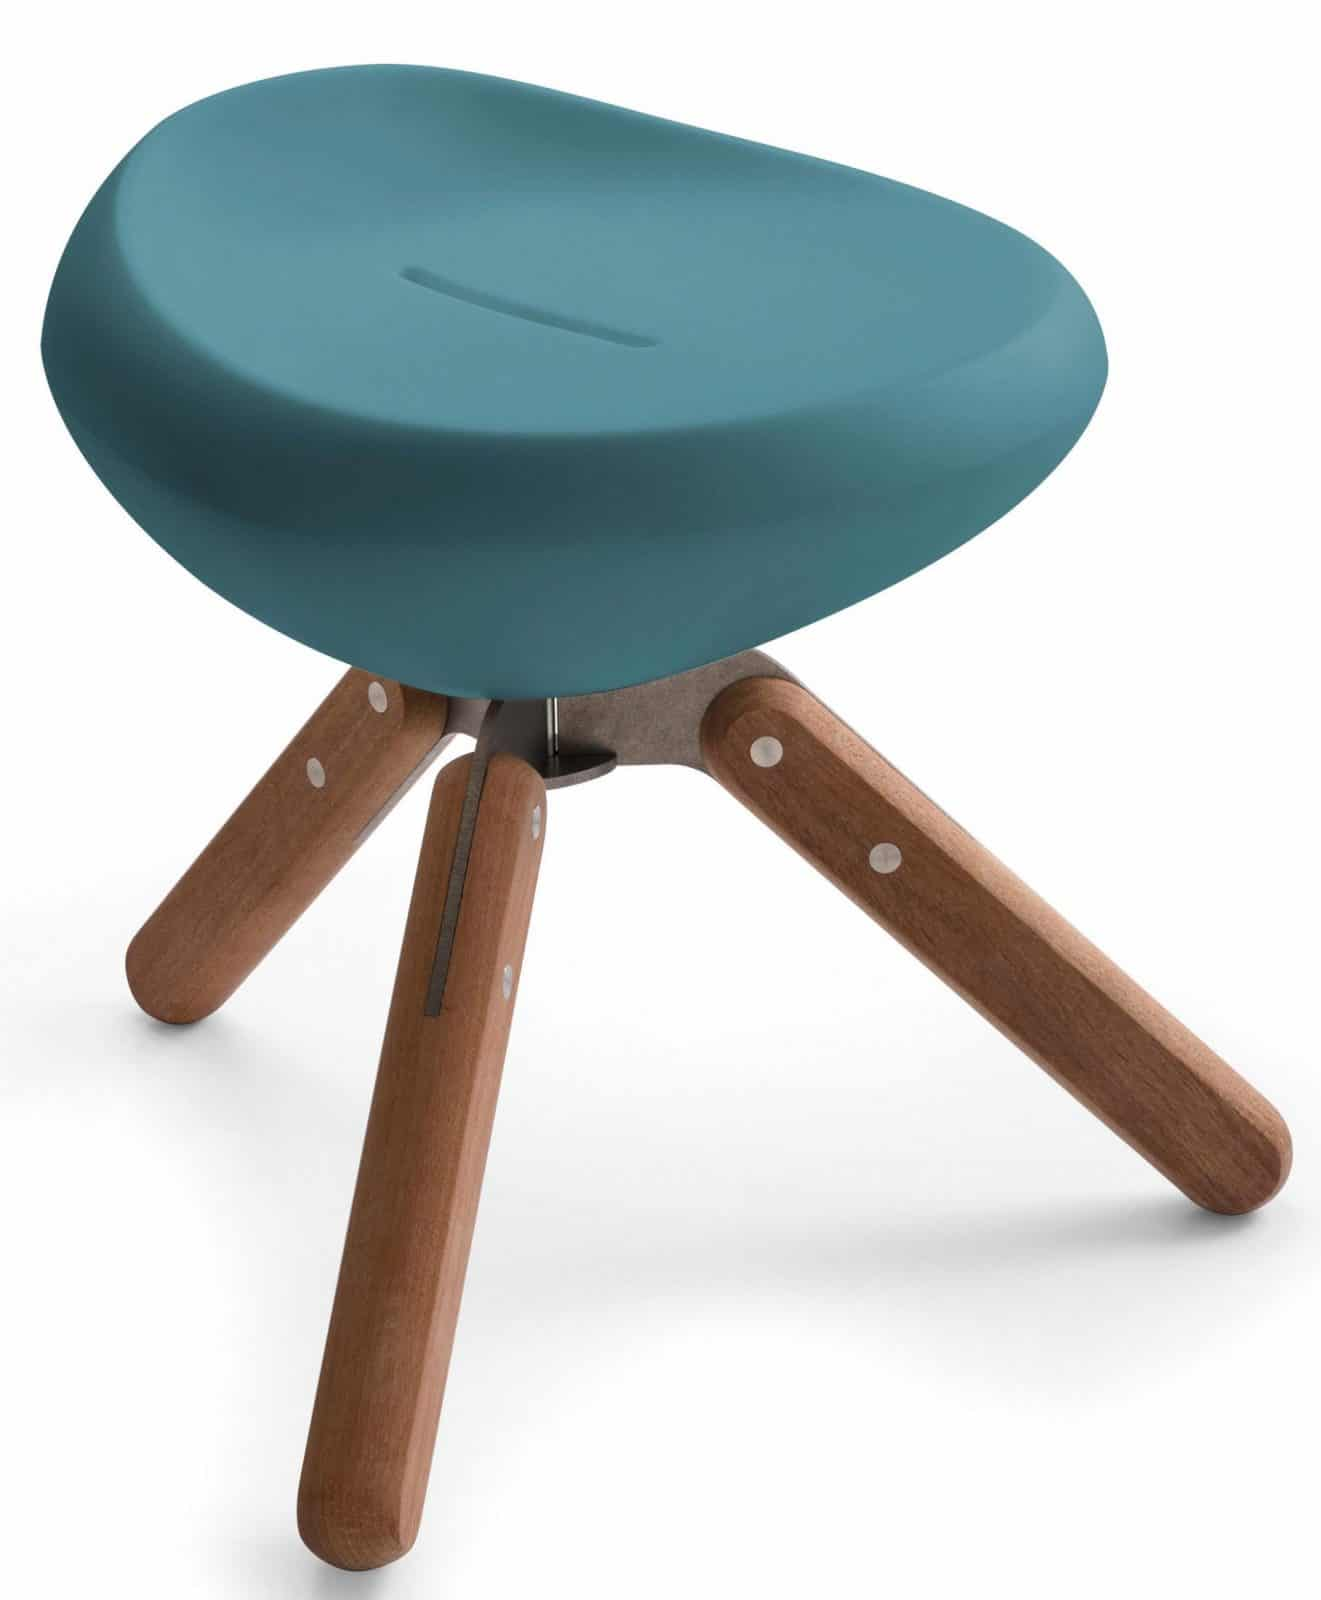 Easer Low Stool Telegraph Contract Furniture